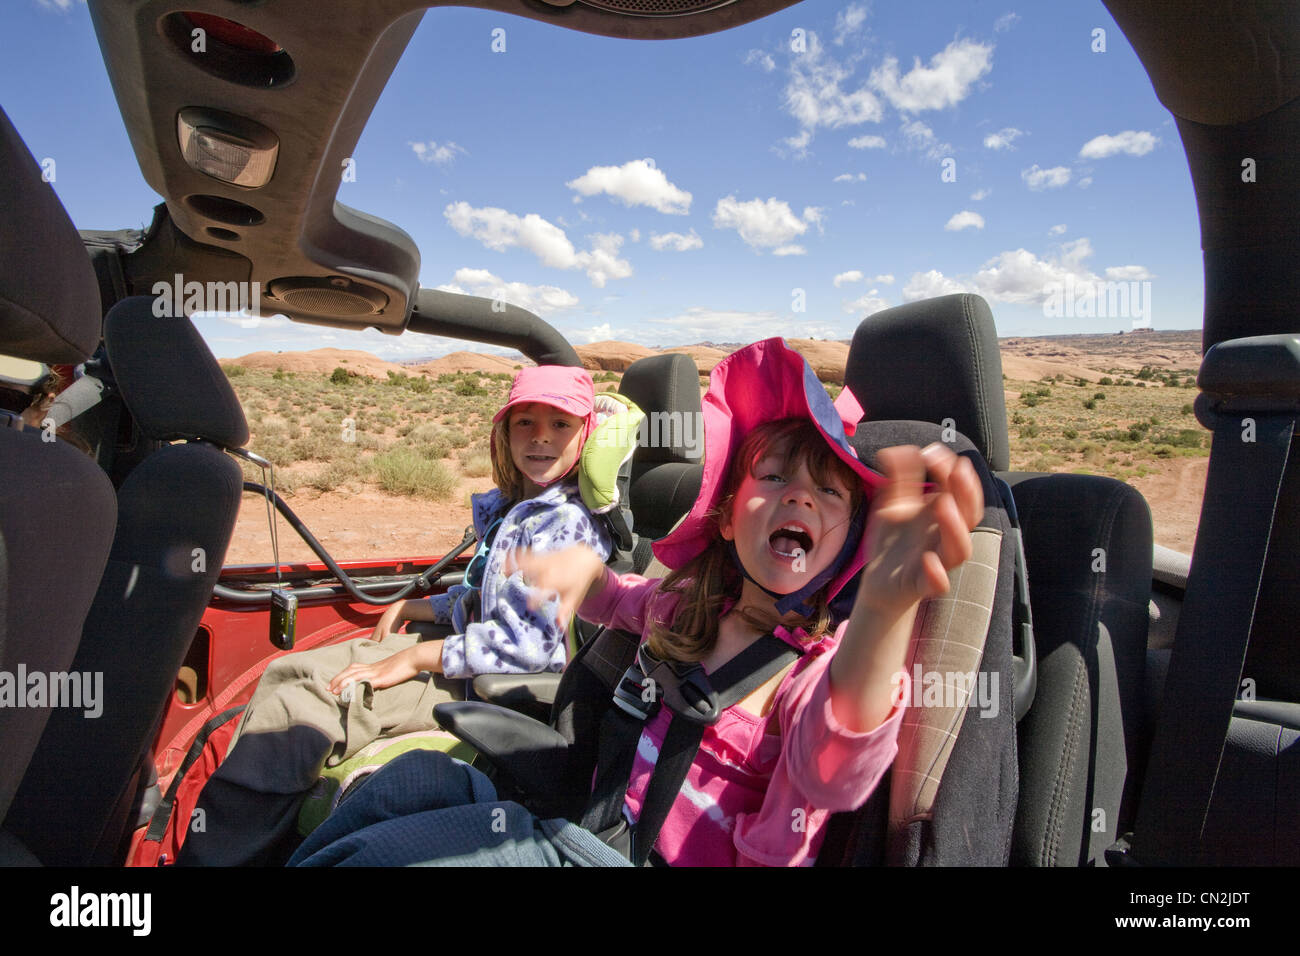 Two Young Girls Smiling in Backseat of Jeep, Moab, Utah, USA - Stock Image